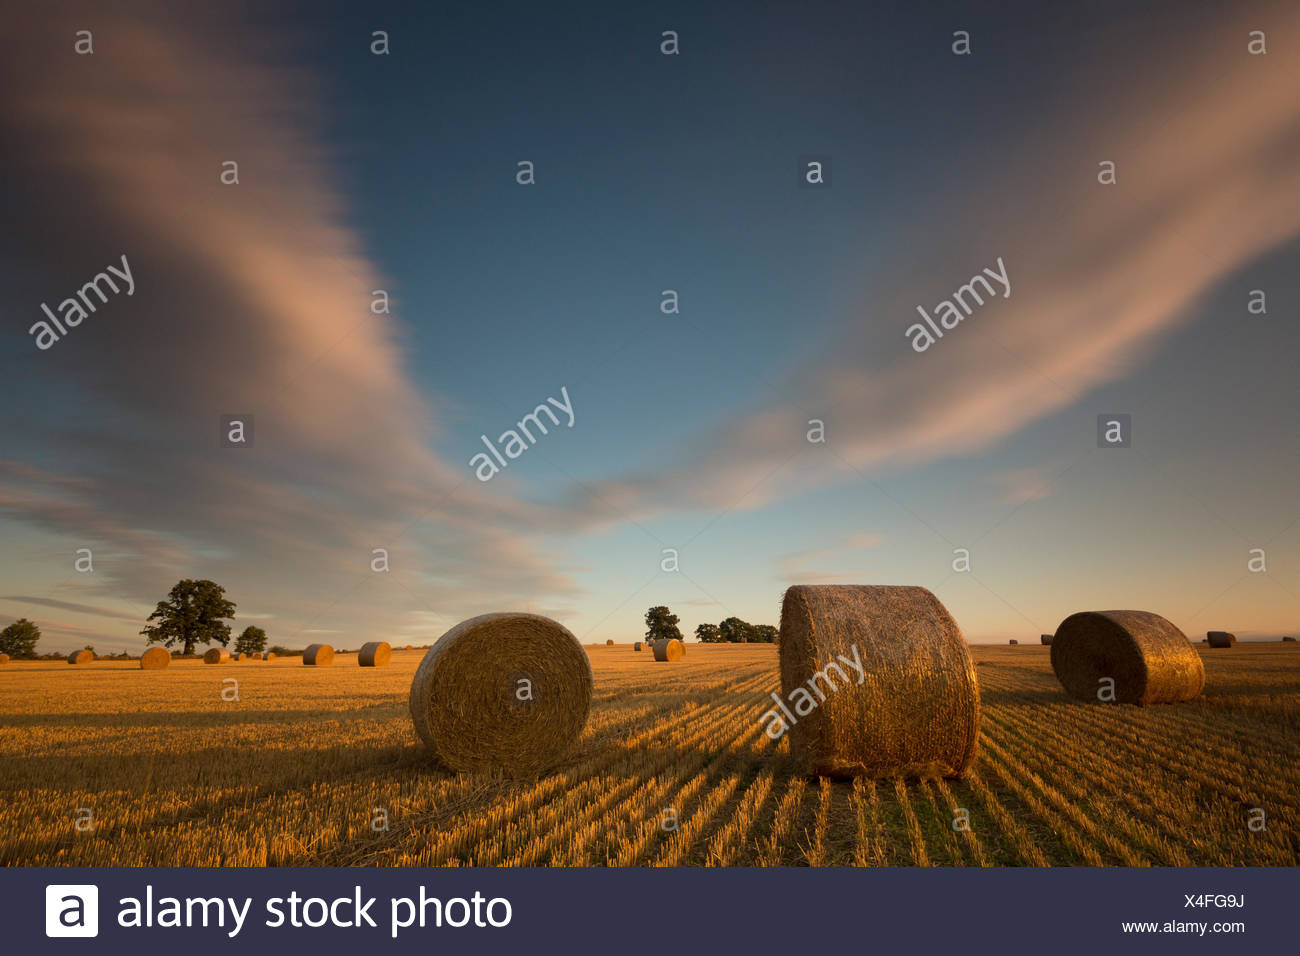 moving clouds on field with straw bales,long exposure Stock Photo